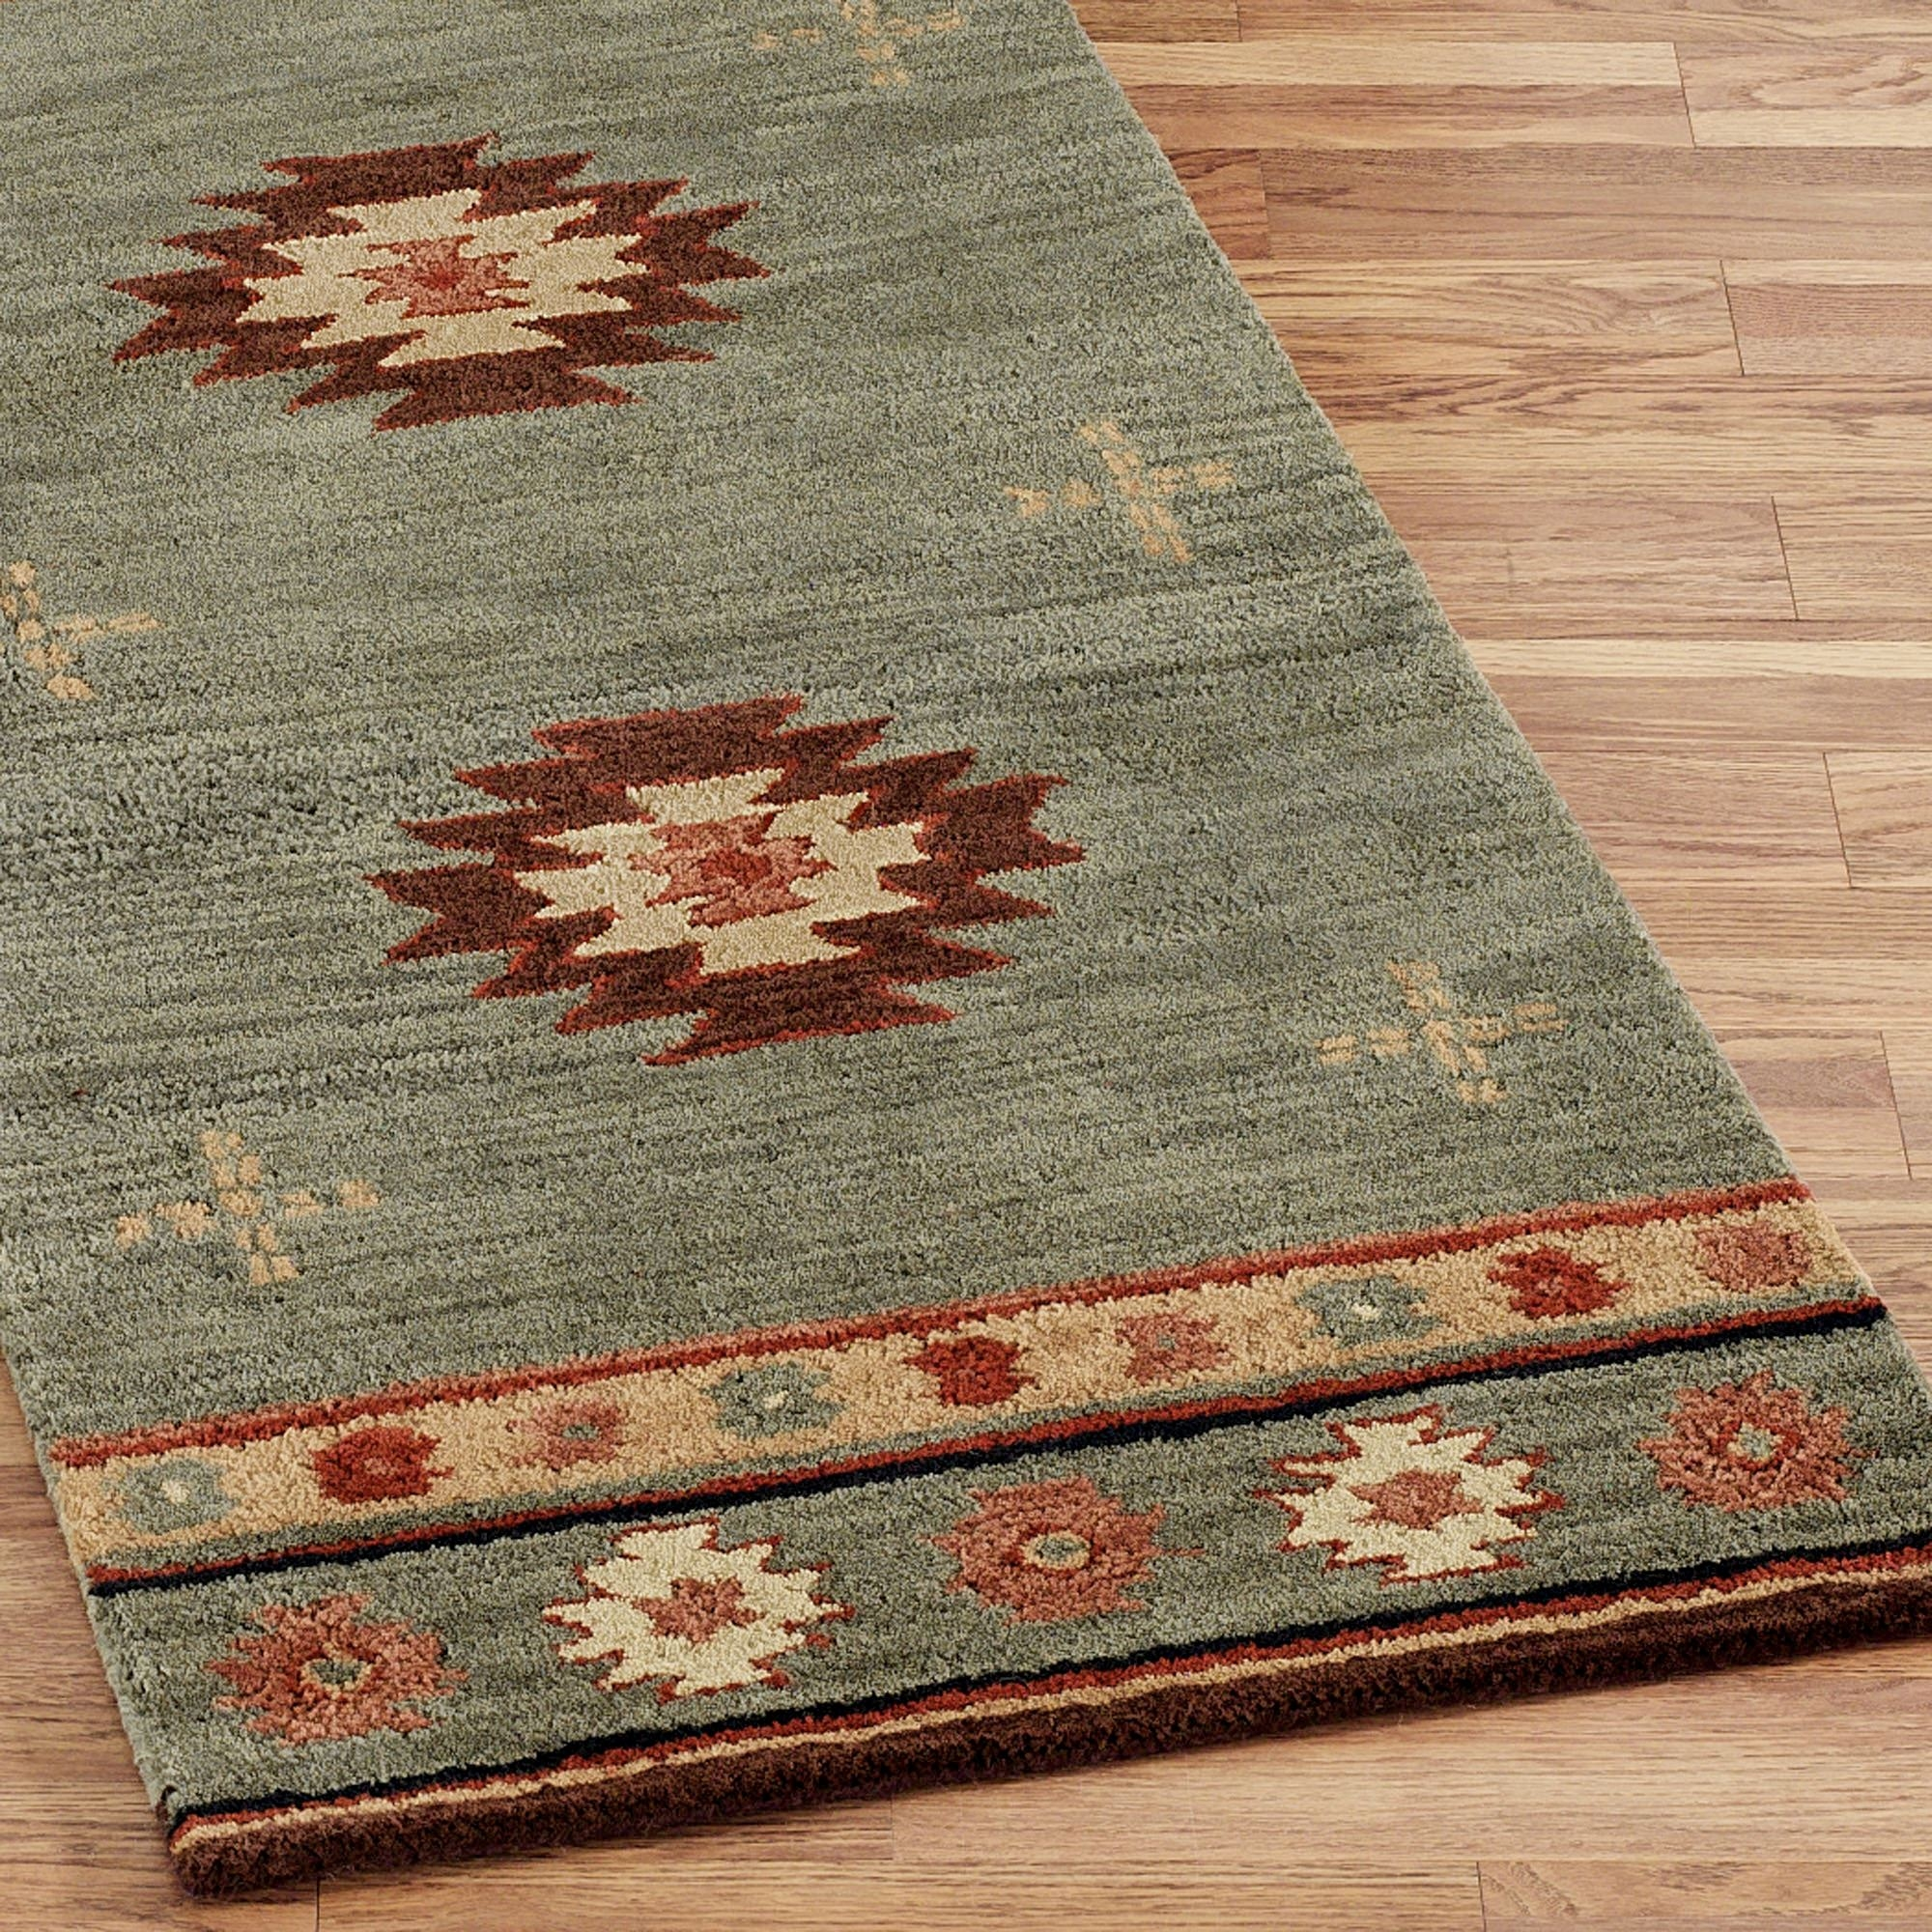 Southwest Diamond Wool Rug Runners In Rug Runners For Bathroom (#18 of 20)